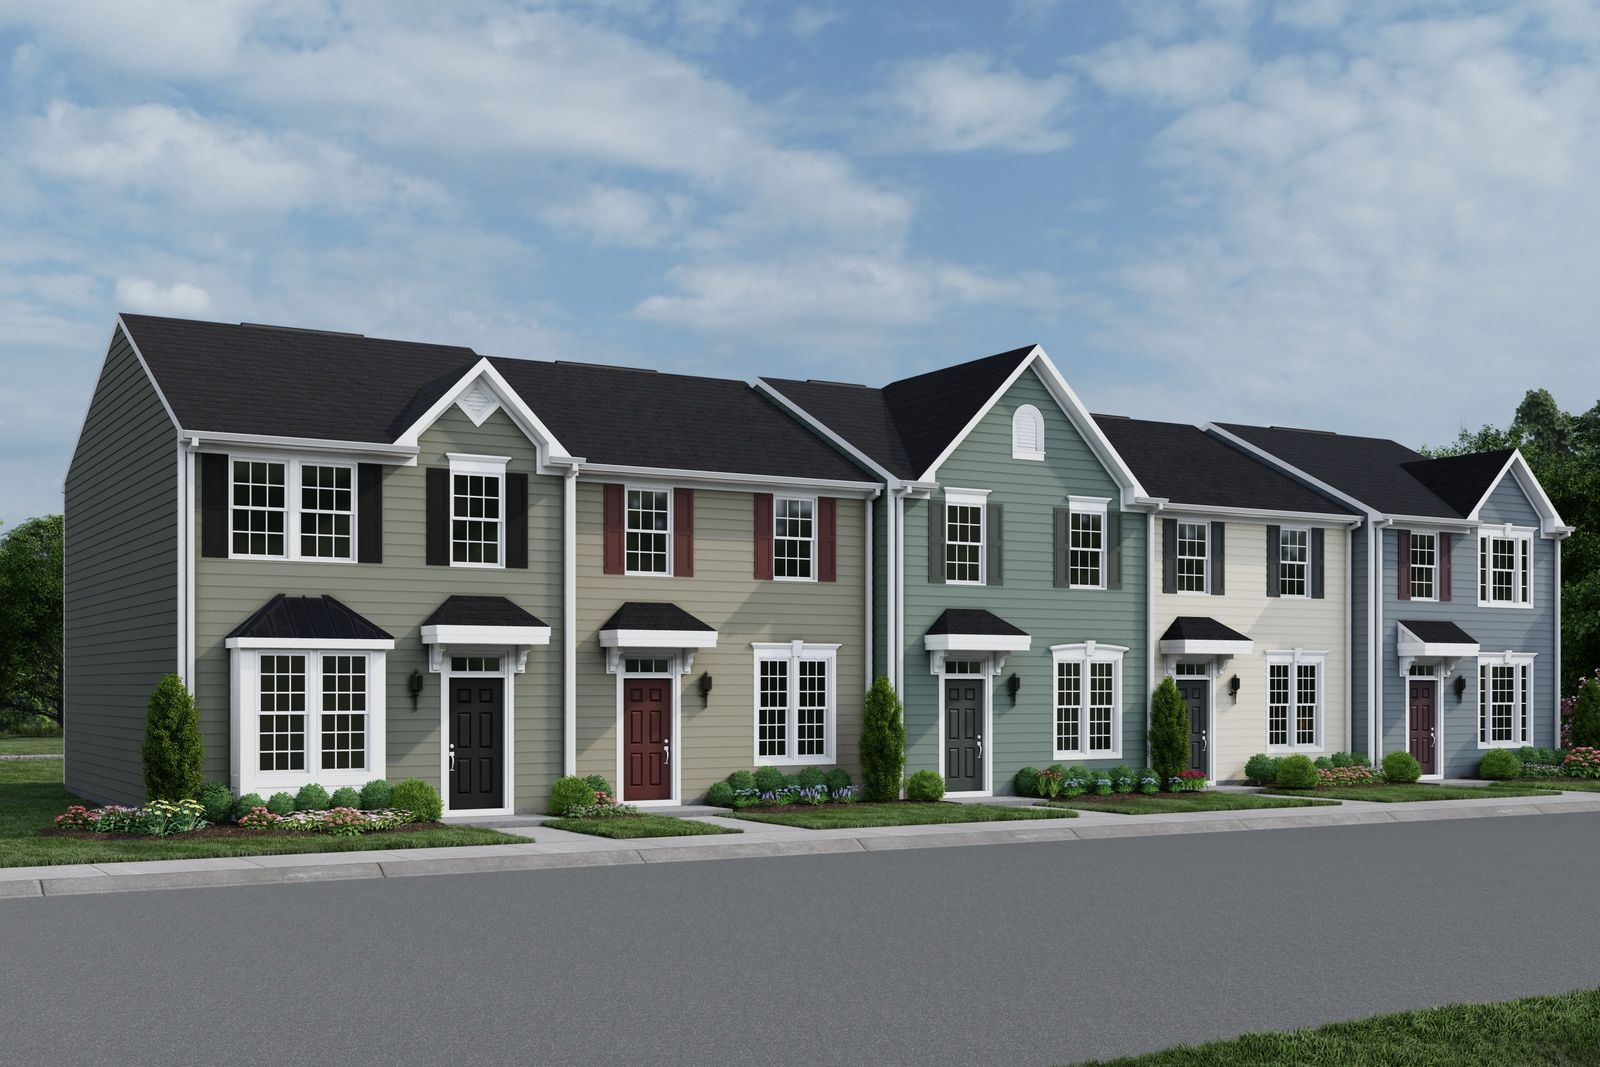 Own a 2-story townhome with street parking in a prime location:Why rent? Own a new home for the same or less than rentclose to Durham &Raleigh. Join the VIPlist today to learn more!